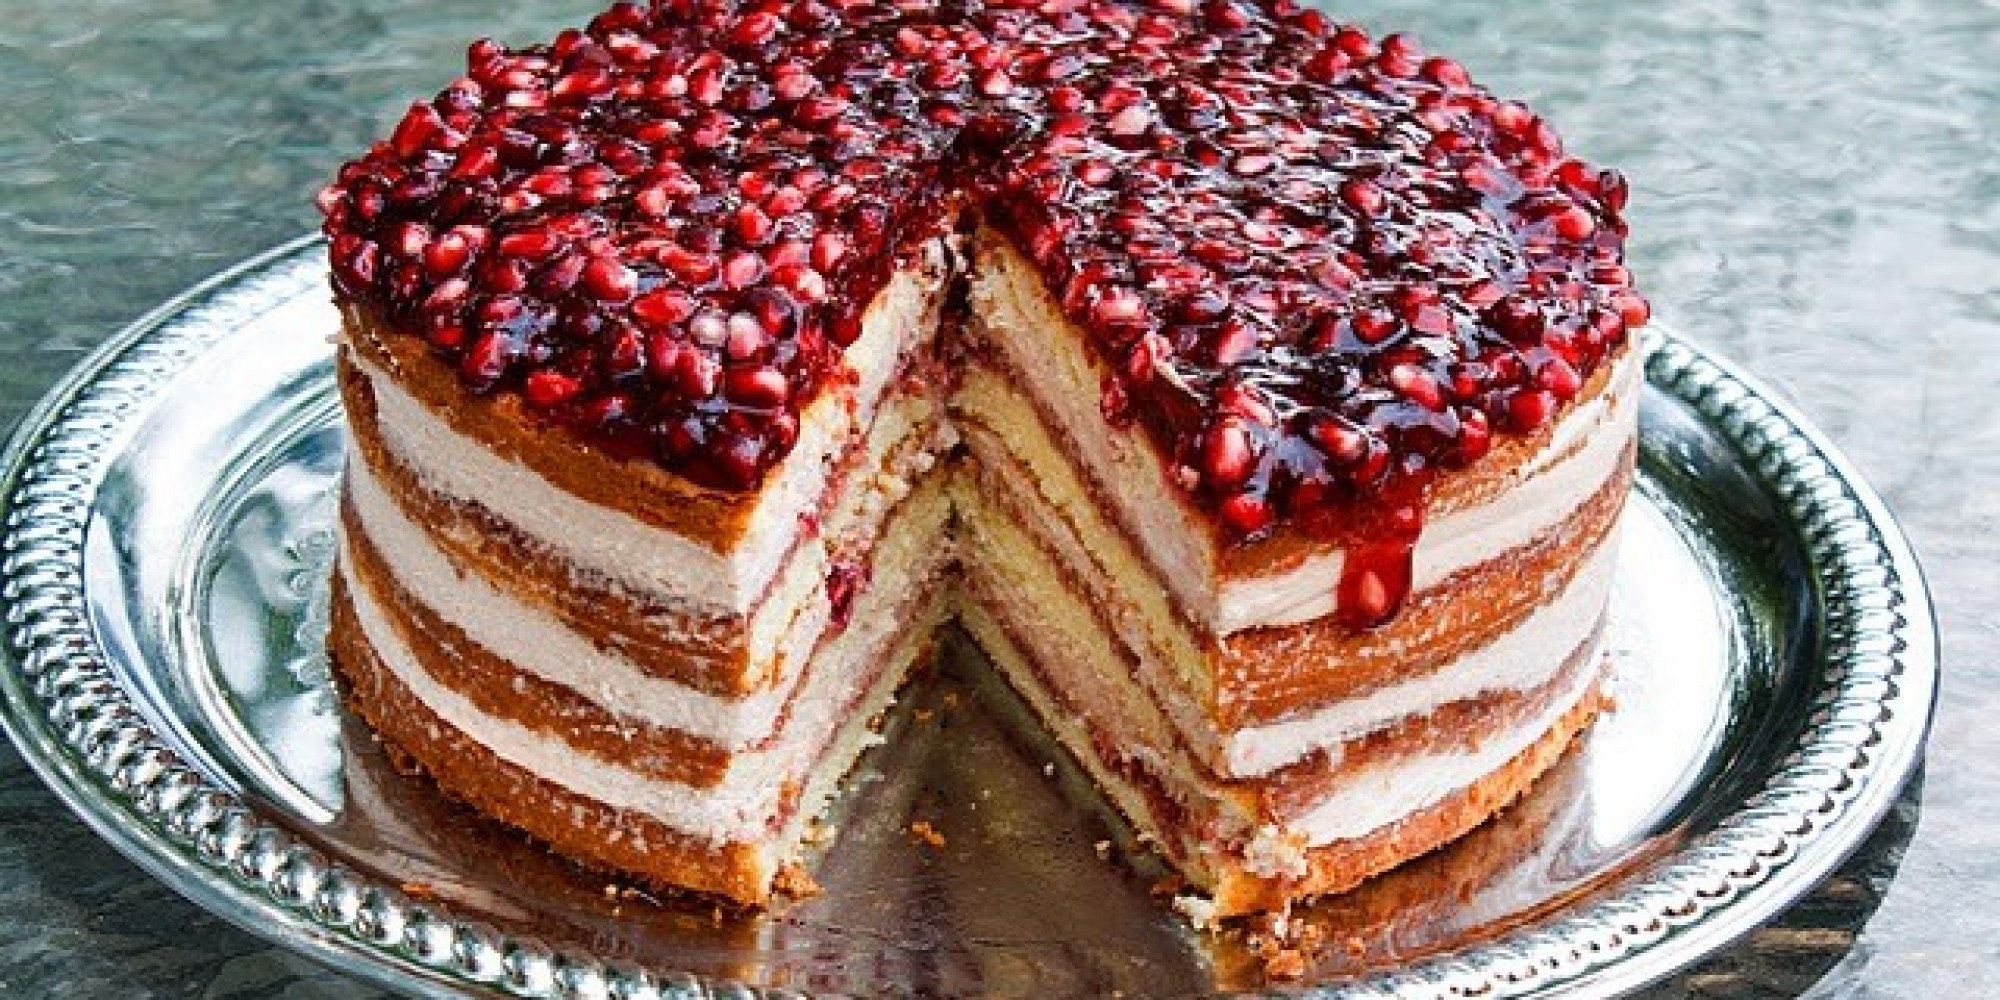 Best Christmas Dessert Recipes  The Most Stunning Christmas Dessert Recipes Ever PHOTOS